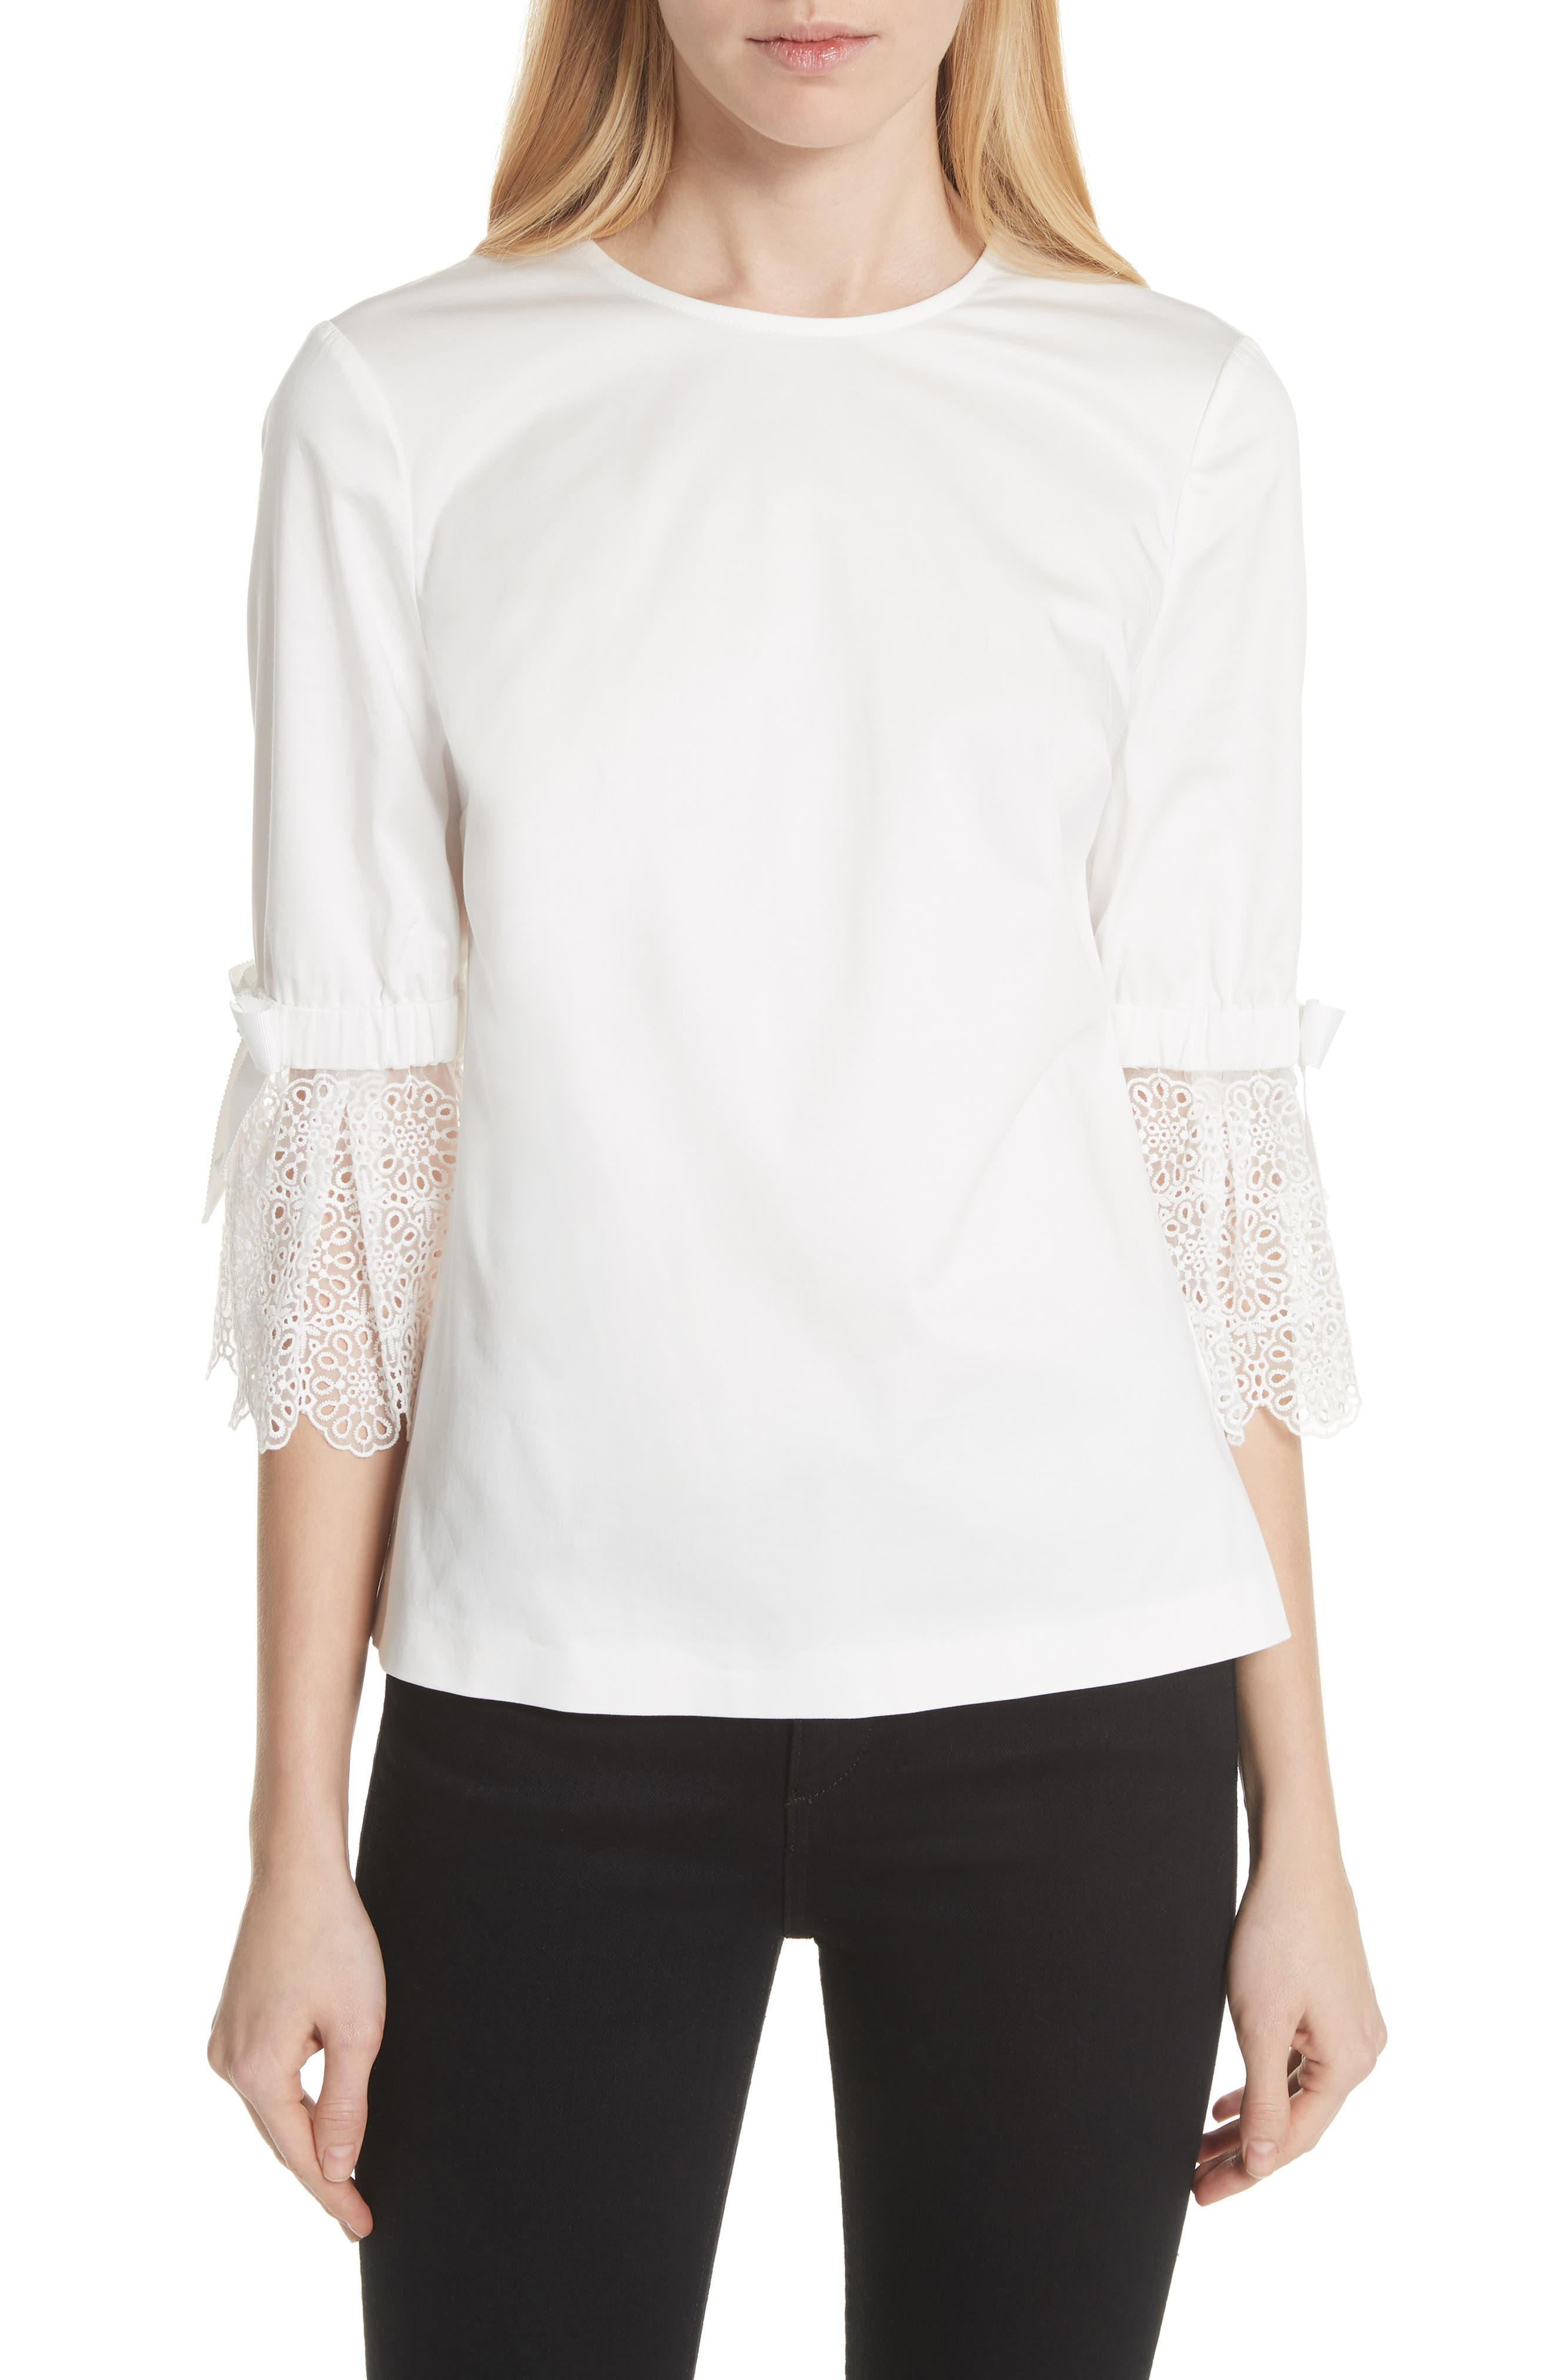 Broderie Lace Bow Sleeve Top,                             Main thumbnail 1, color,                             White